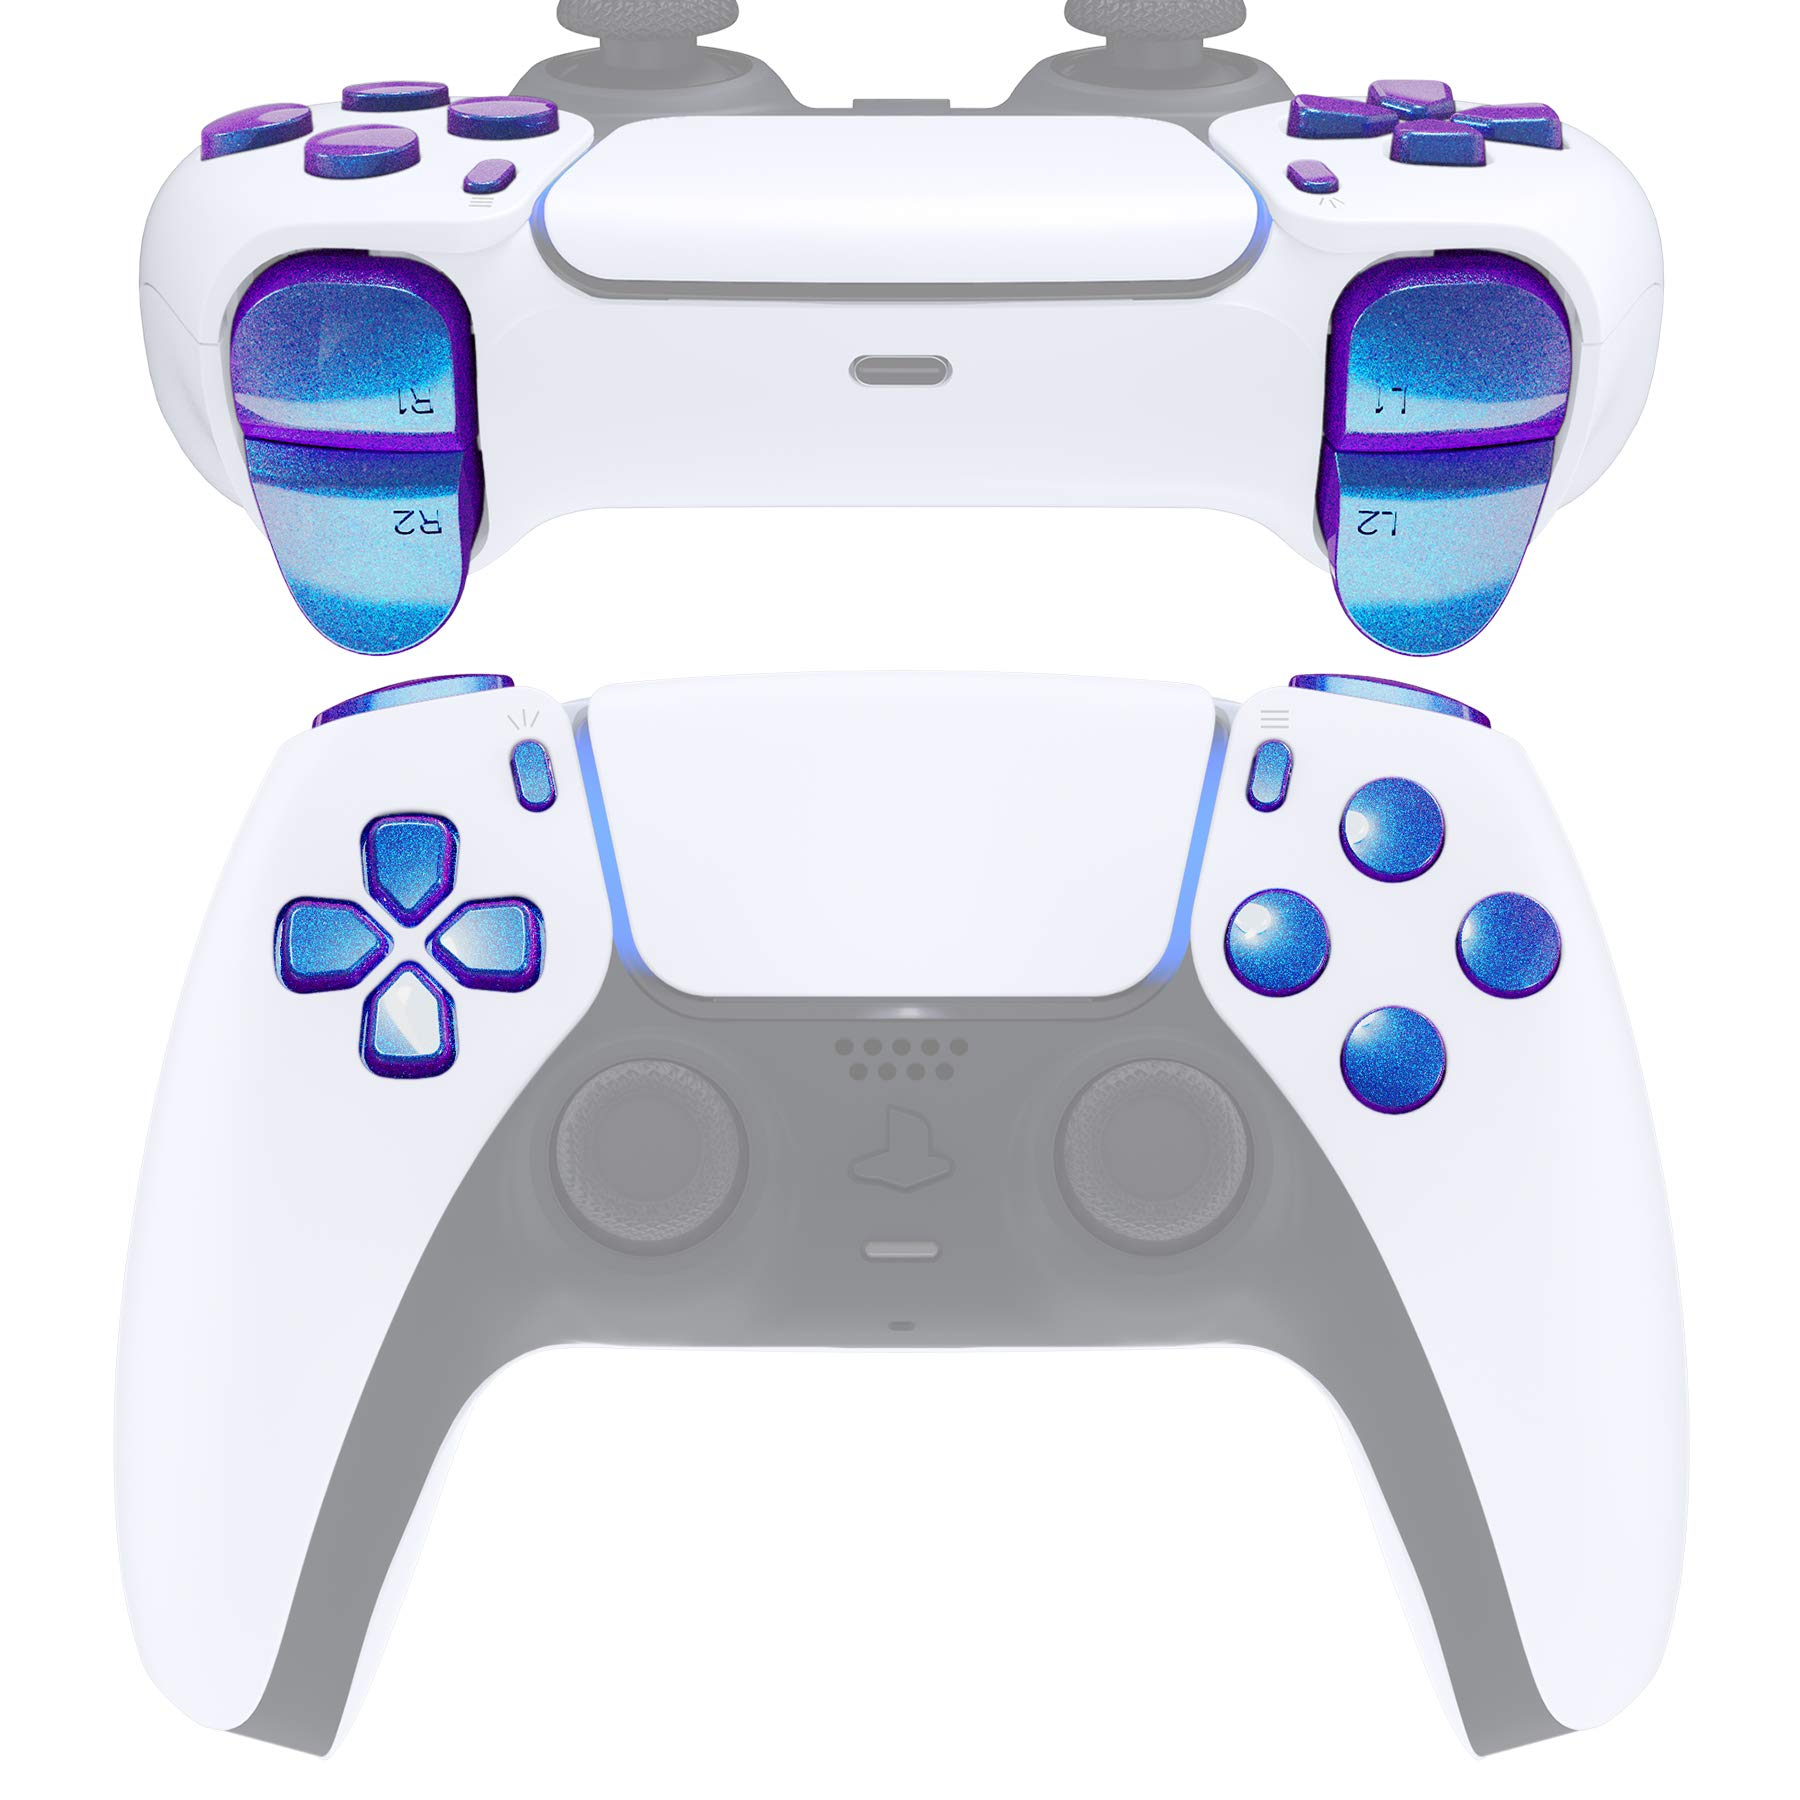 eXtremeRate Replacement D-pad R1 L1 R2 L2 Triggers Share Options Face Buttons for DualSense 5 PS5 Controller, Chameleon Purple Blue Full Set Buttons Repair Kits with Tool for Playstation 5 Controller